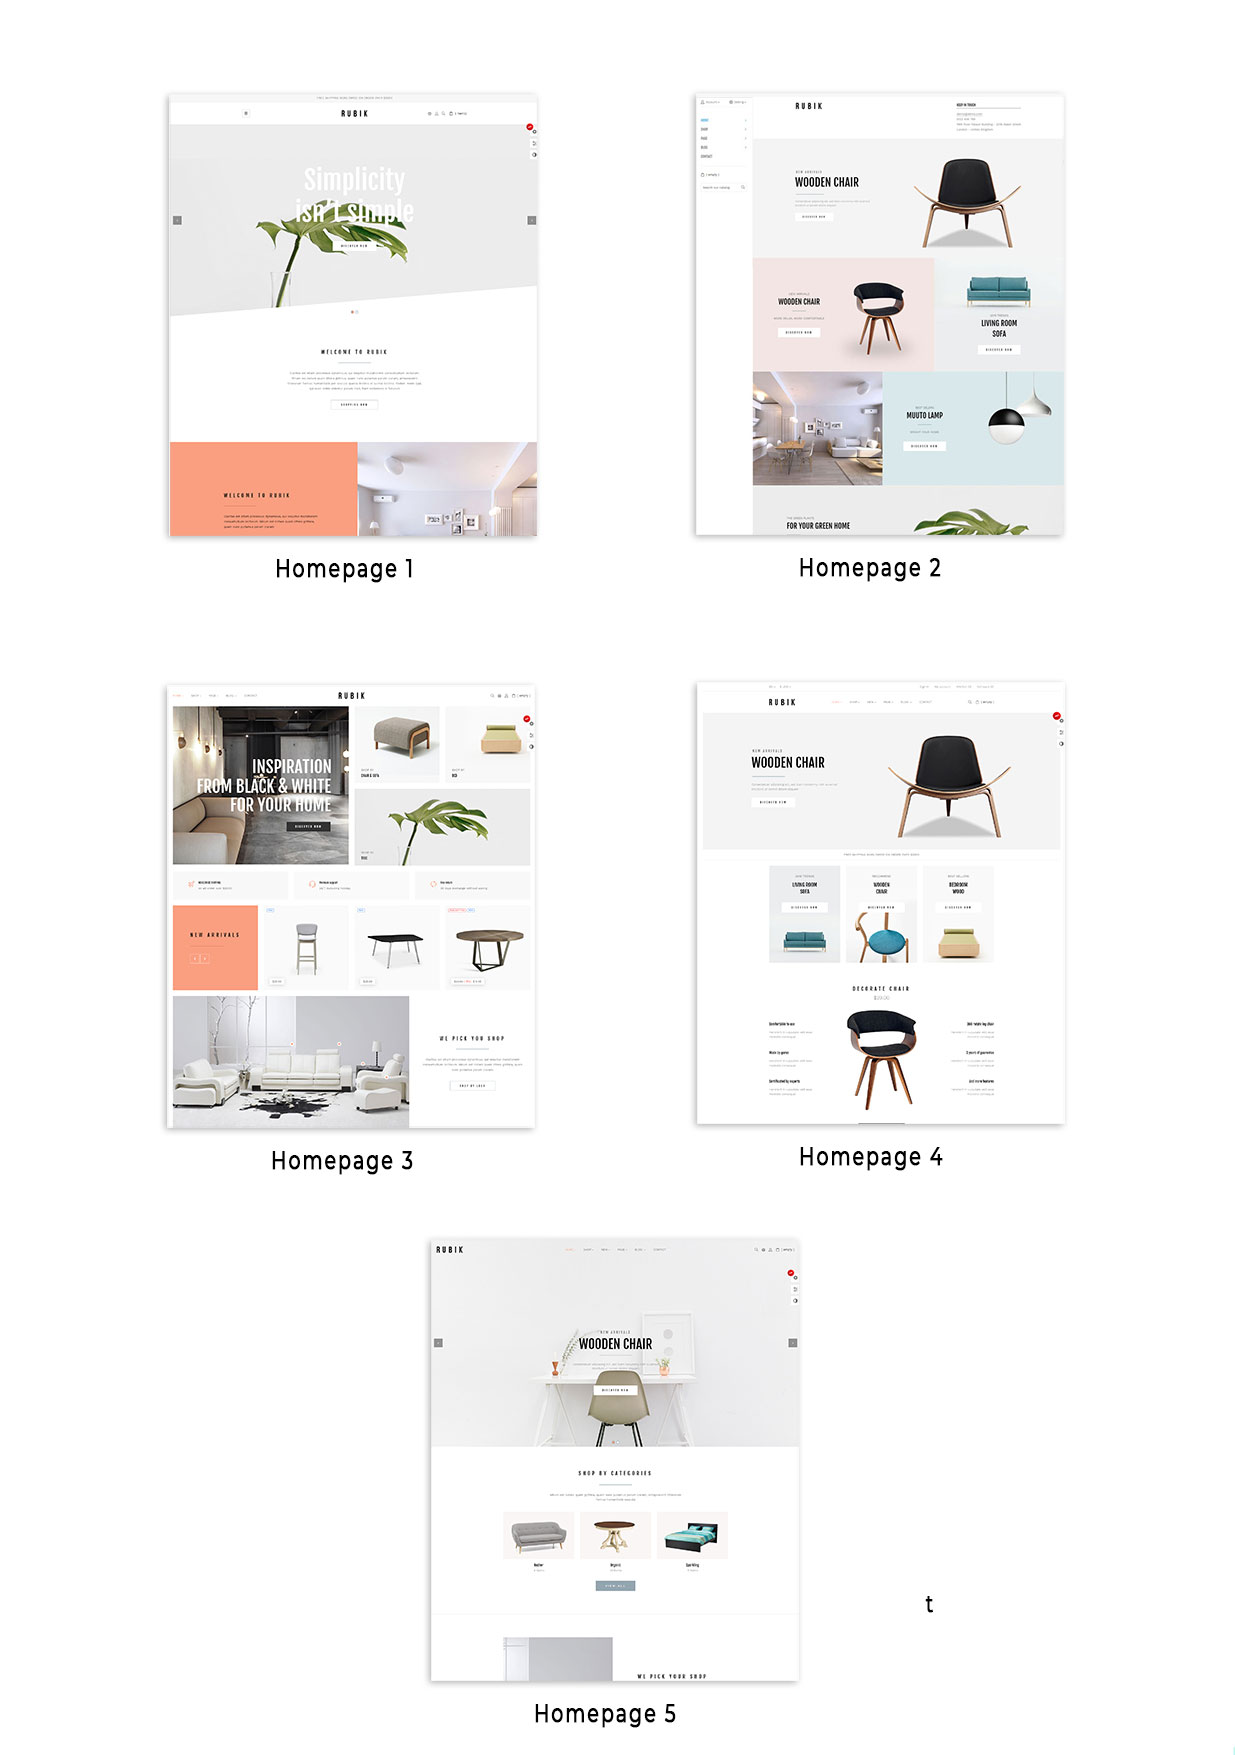 5-homepages-rubik-furniture-prestashop-theme